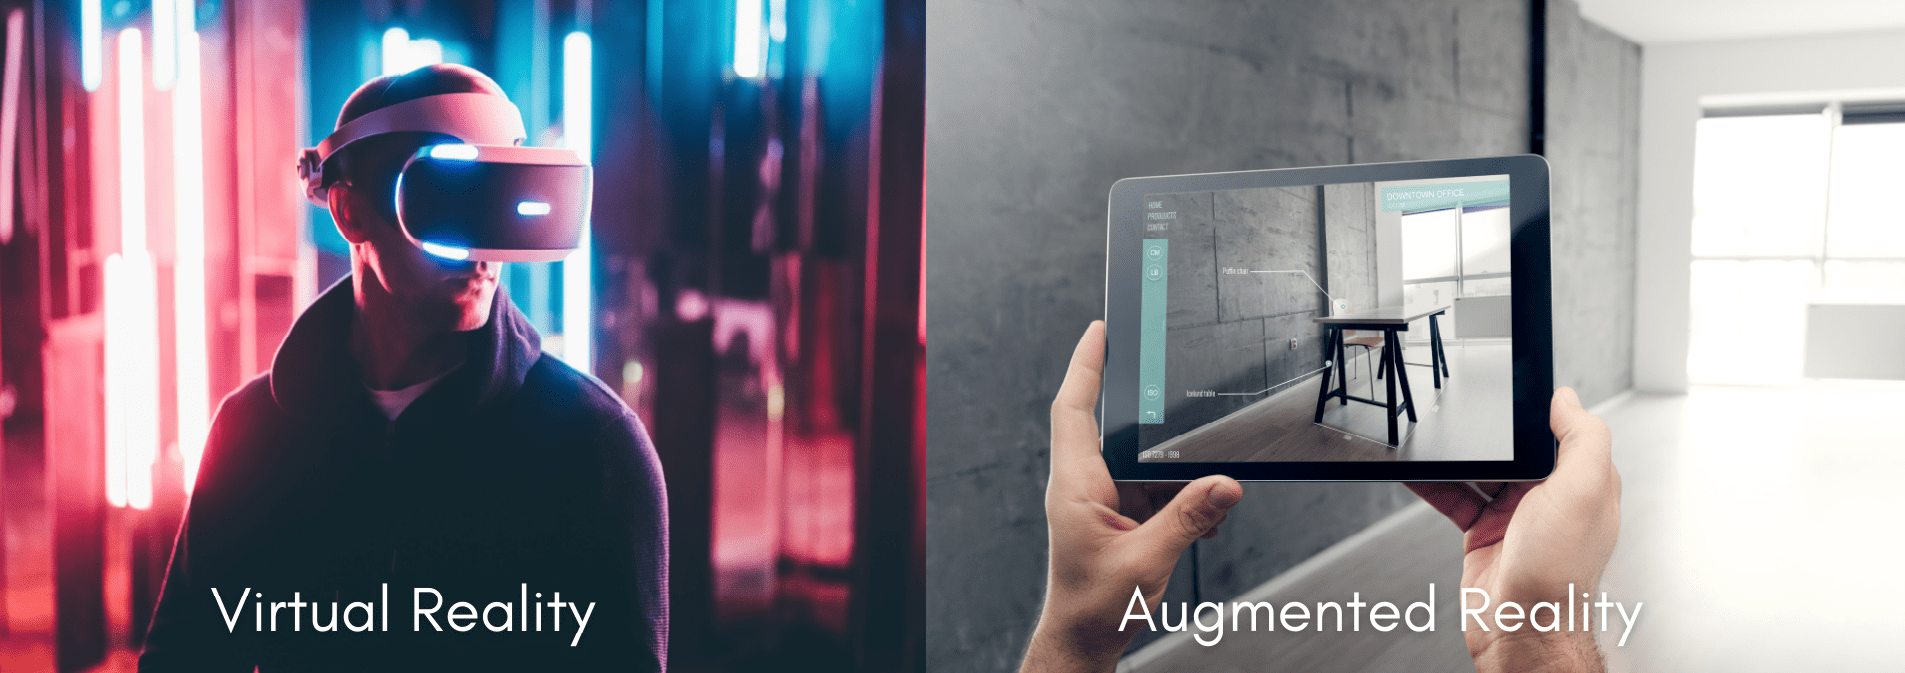 Virtual Reality and Augmented Reality technology trends in 2020s